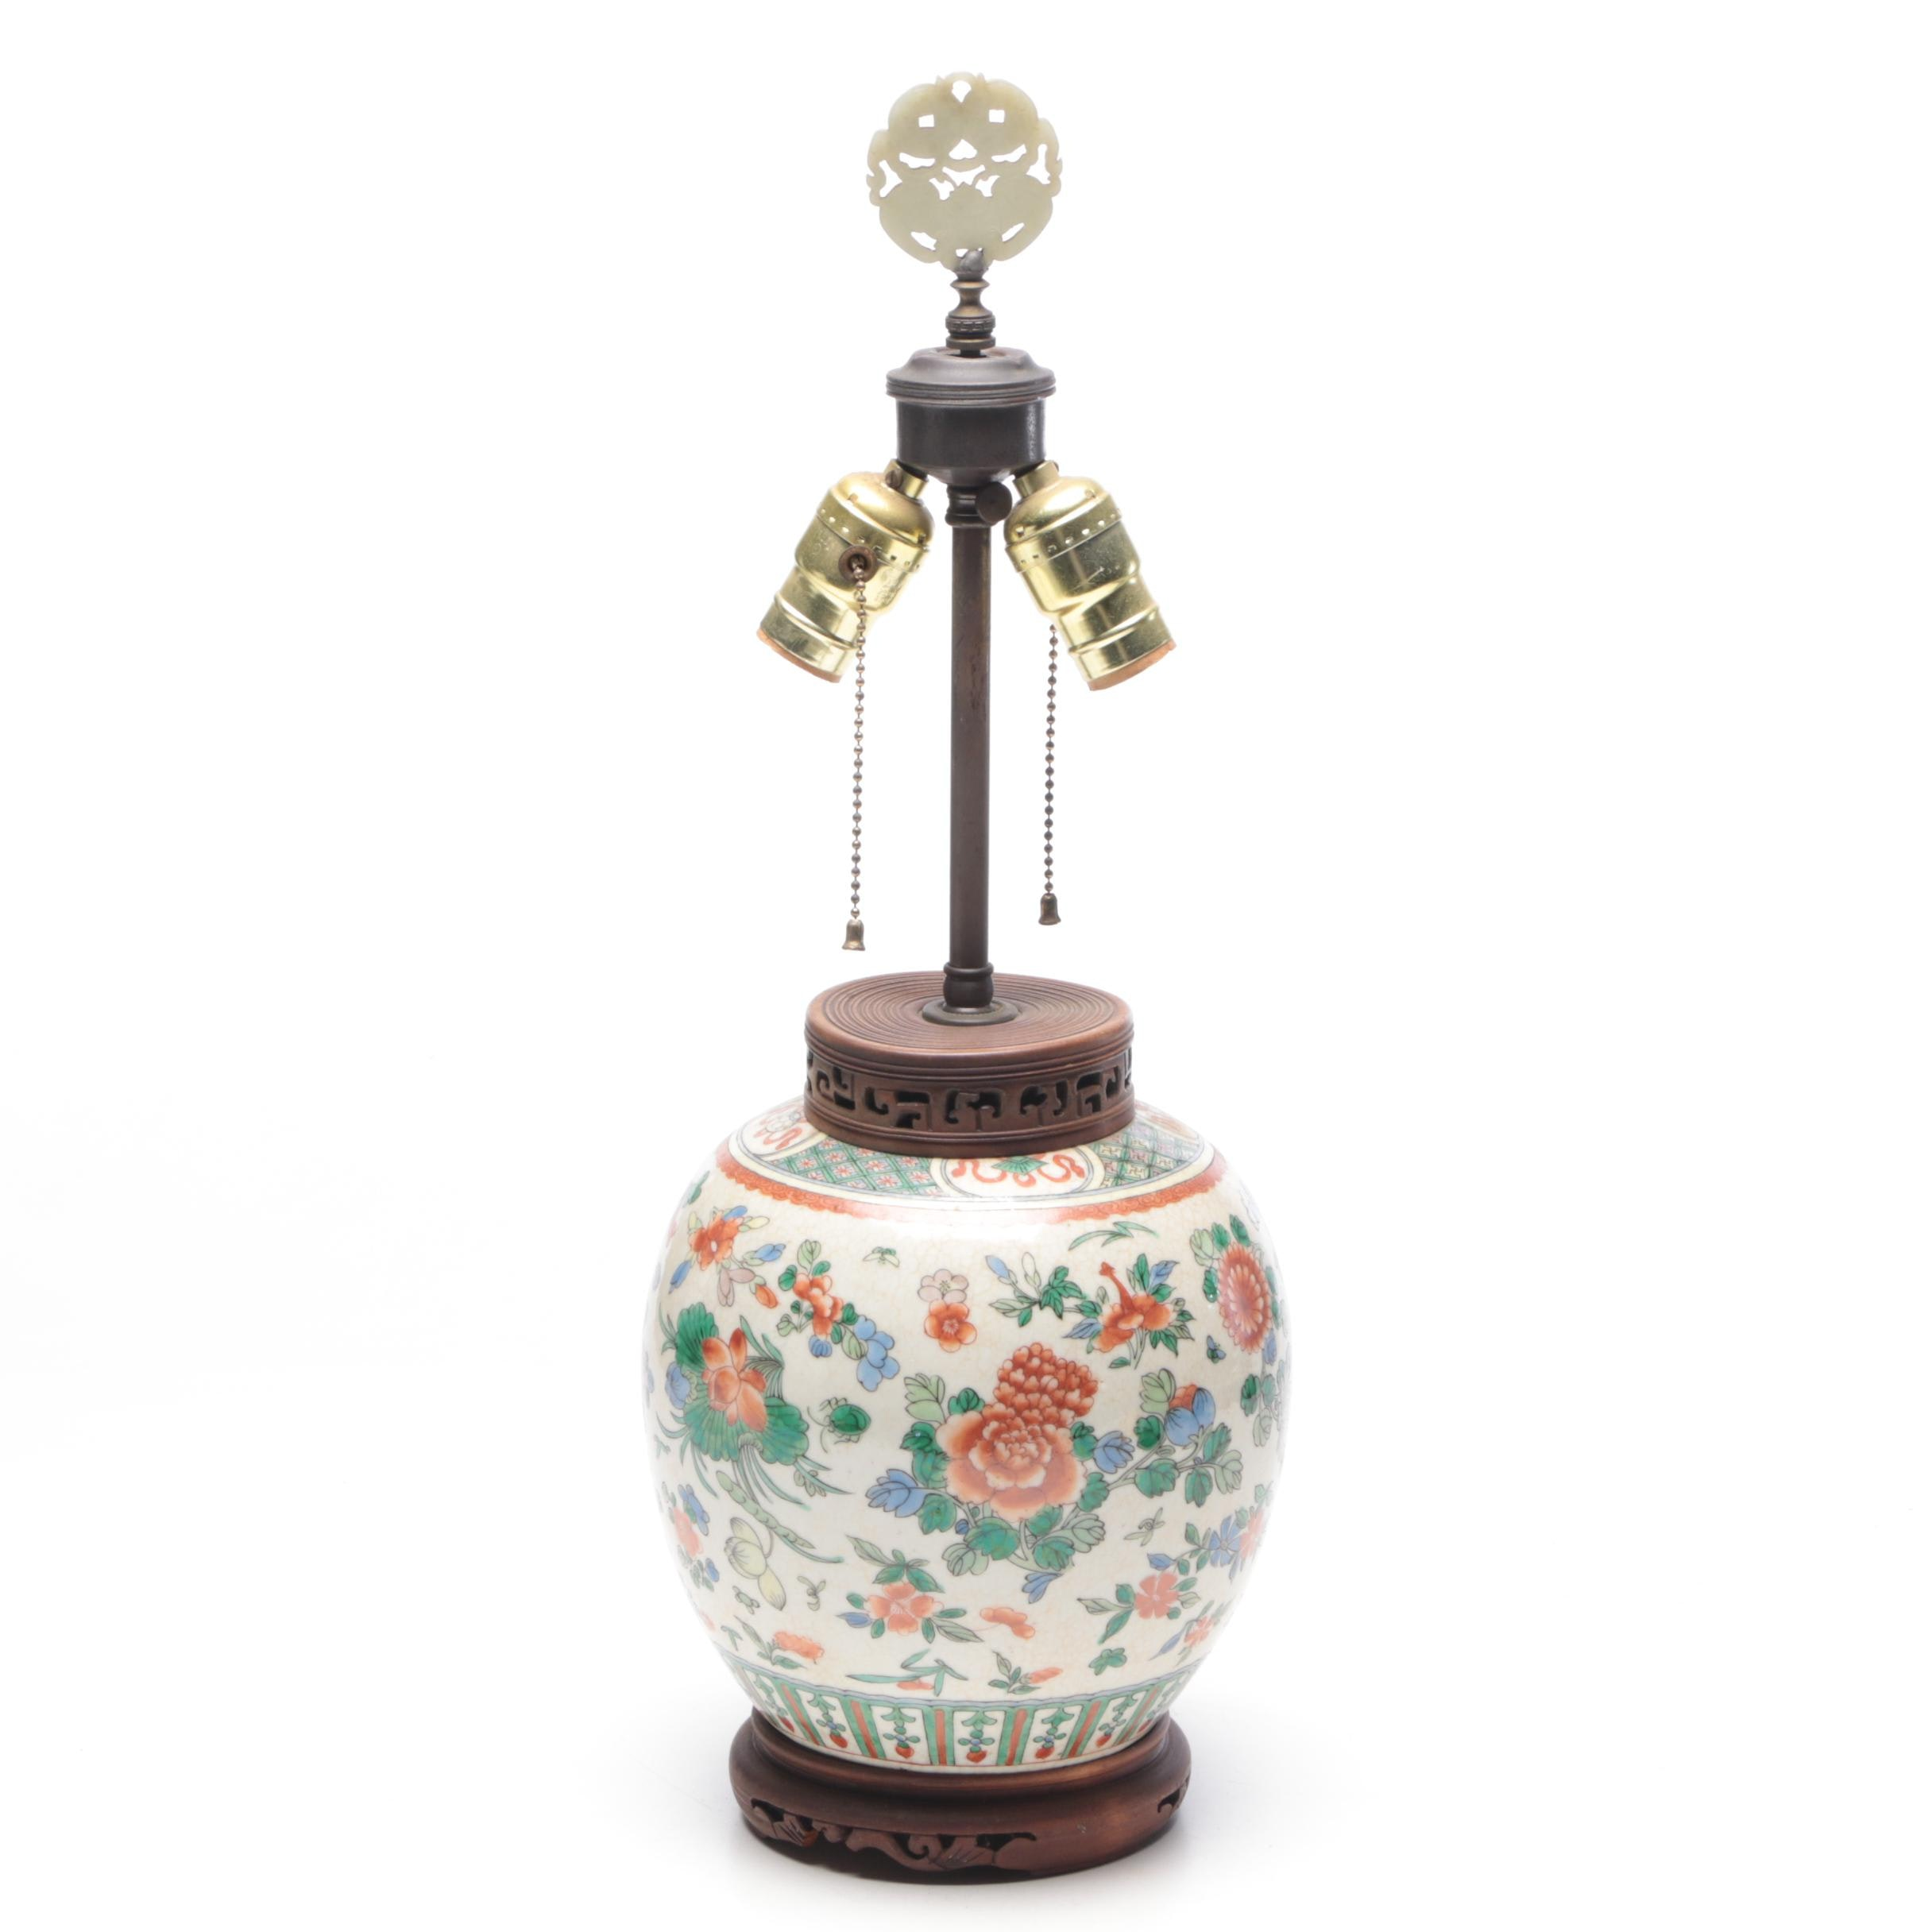 Chinese Hand-Painted Porcelain and Brass Table Lamp, Mid Century